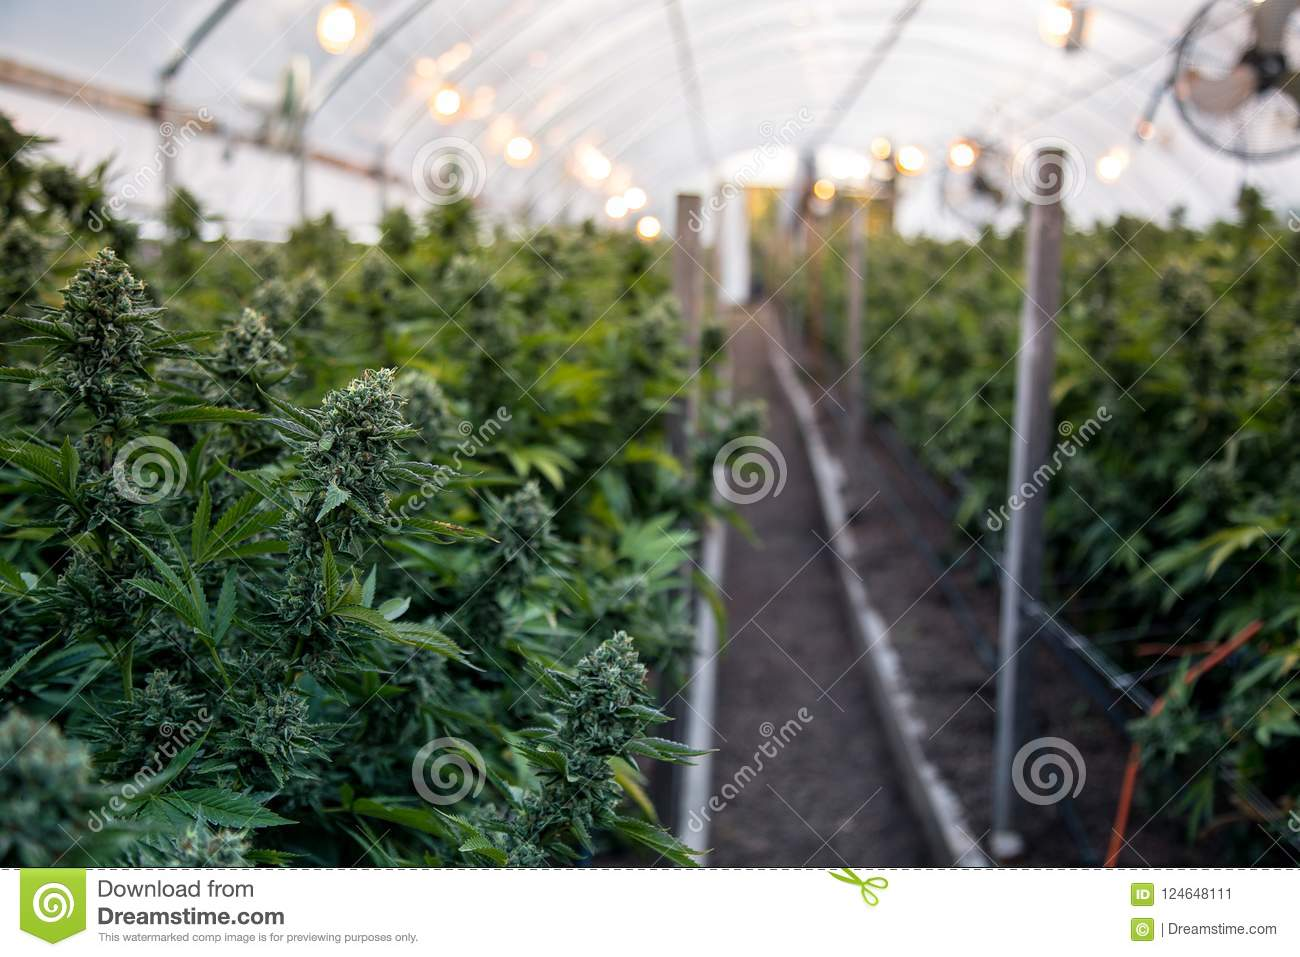 Cannabis buds in greenhouse